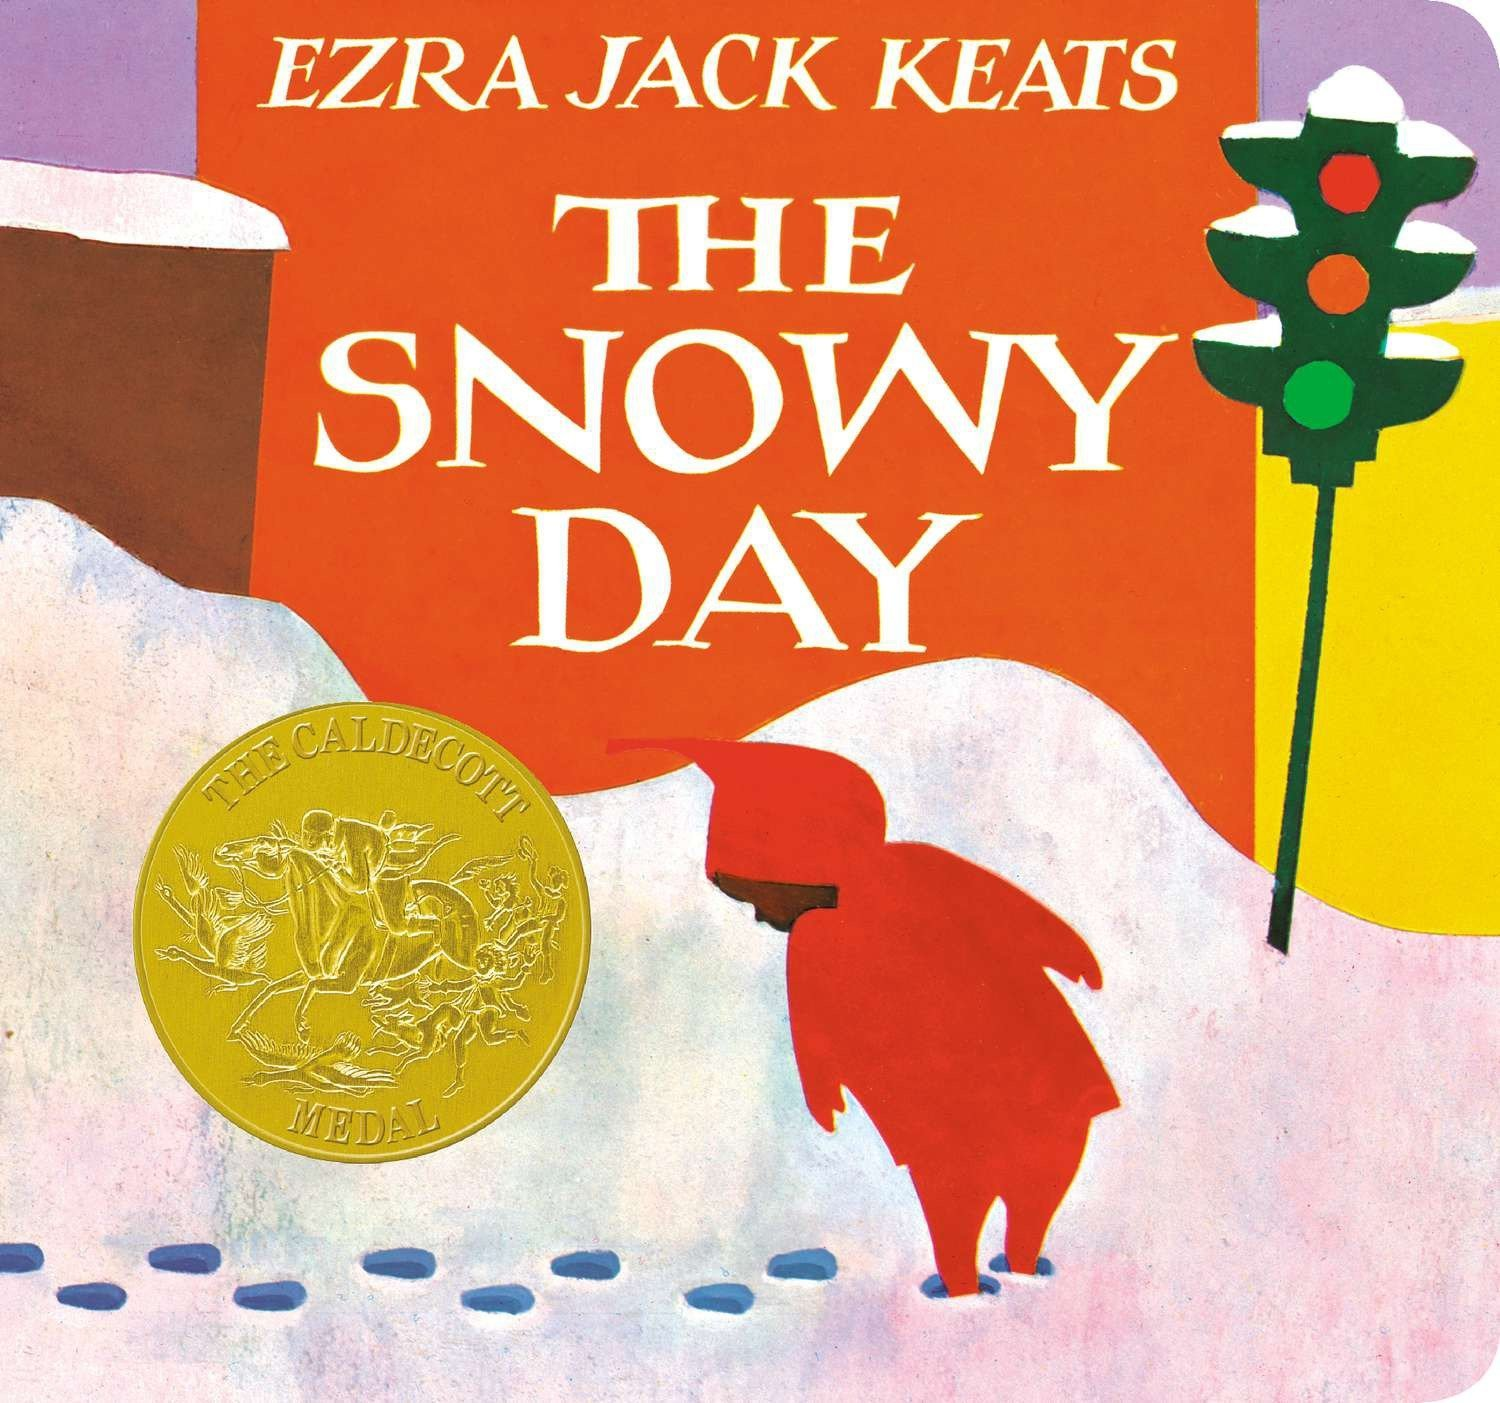 The Snowy Day Board Book: Keats, Ezra Jack: 9780670867332: Amazon.com: Books